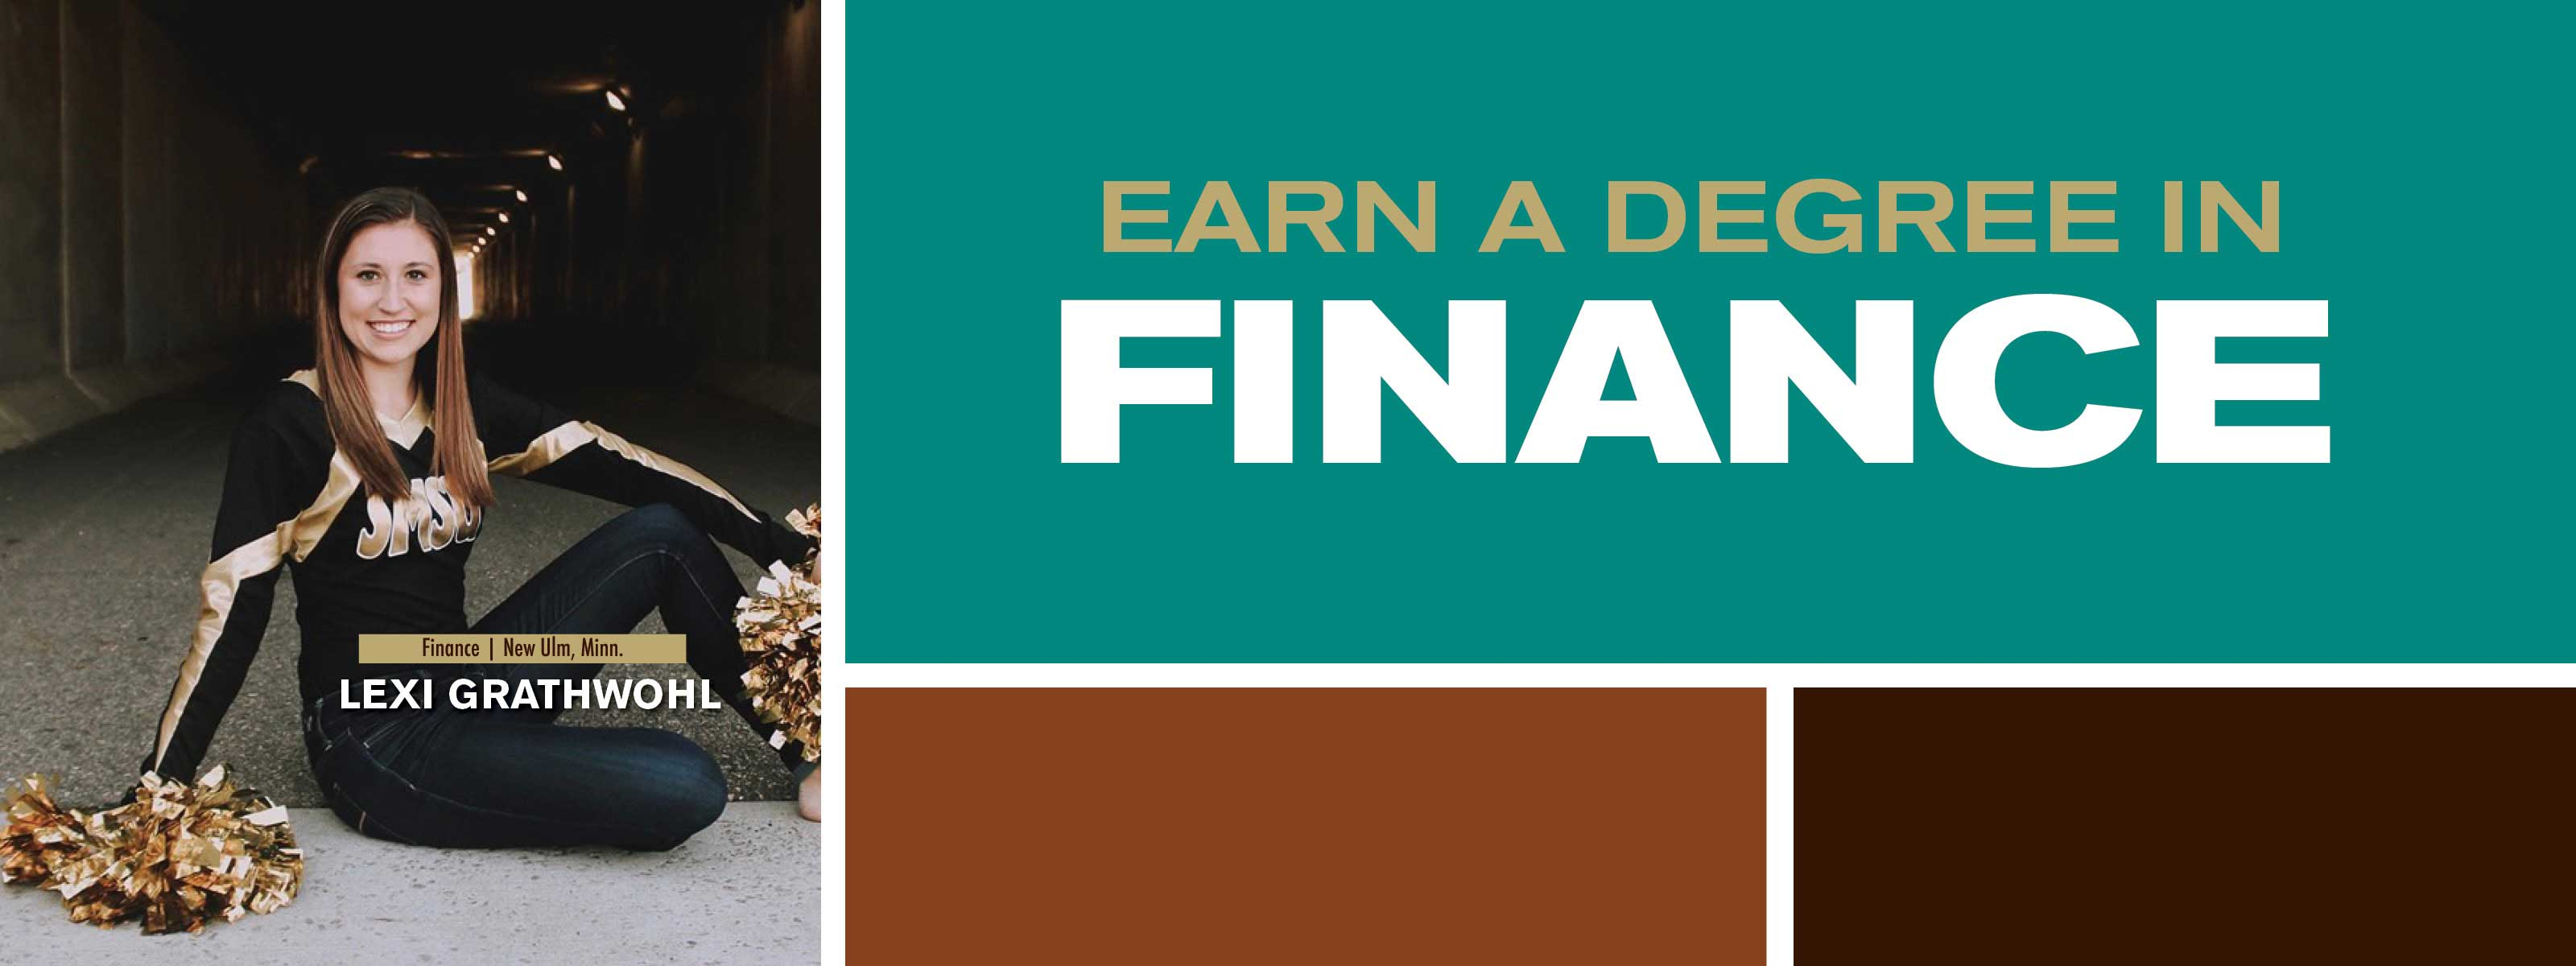 Earn A Degree In Finance - Discover. Engage. Lead.